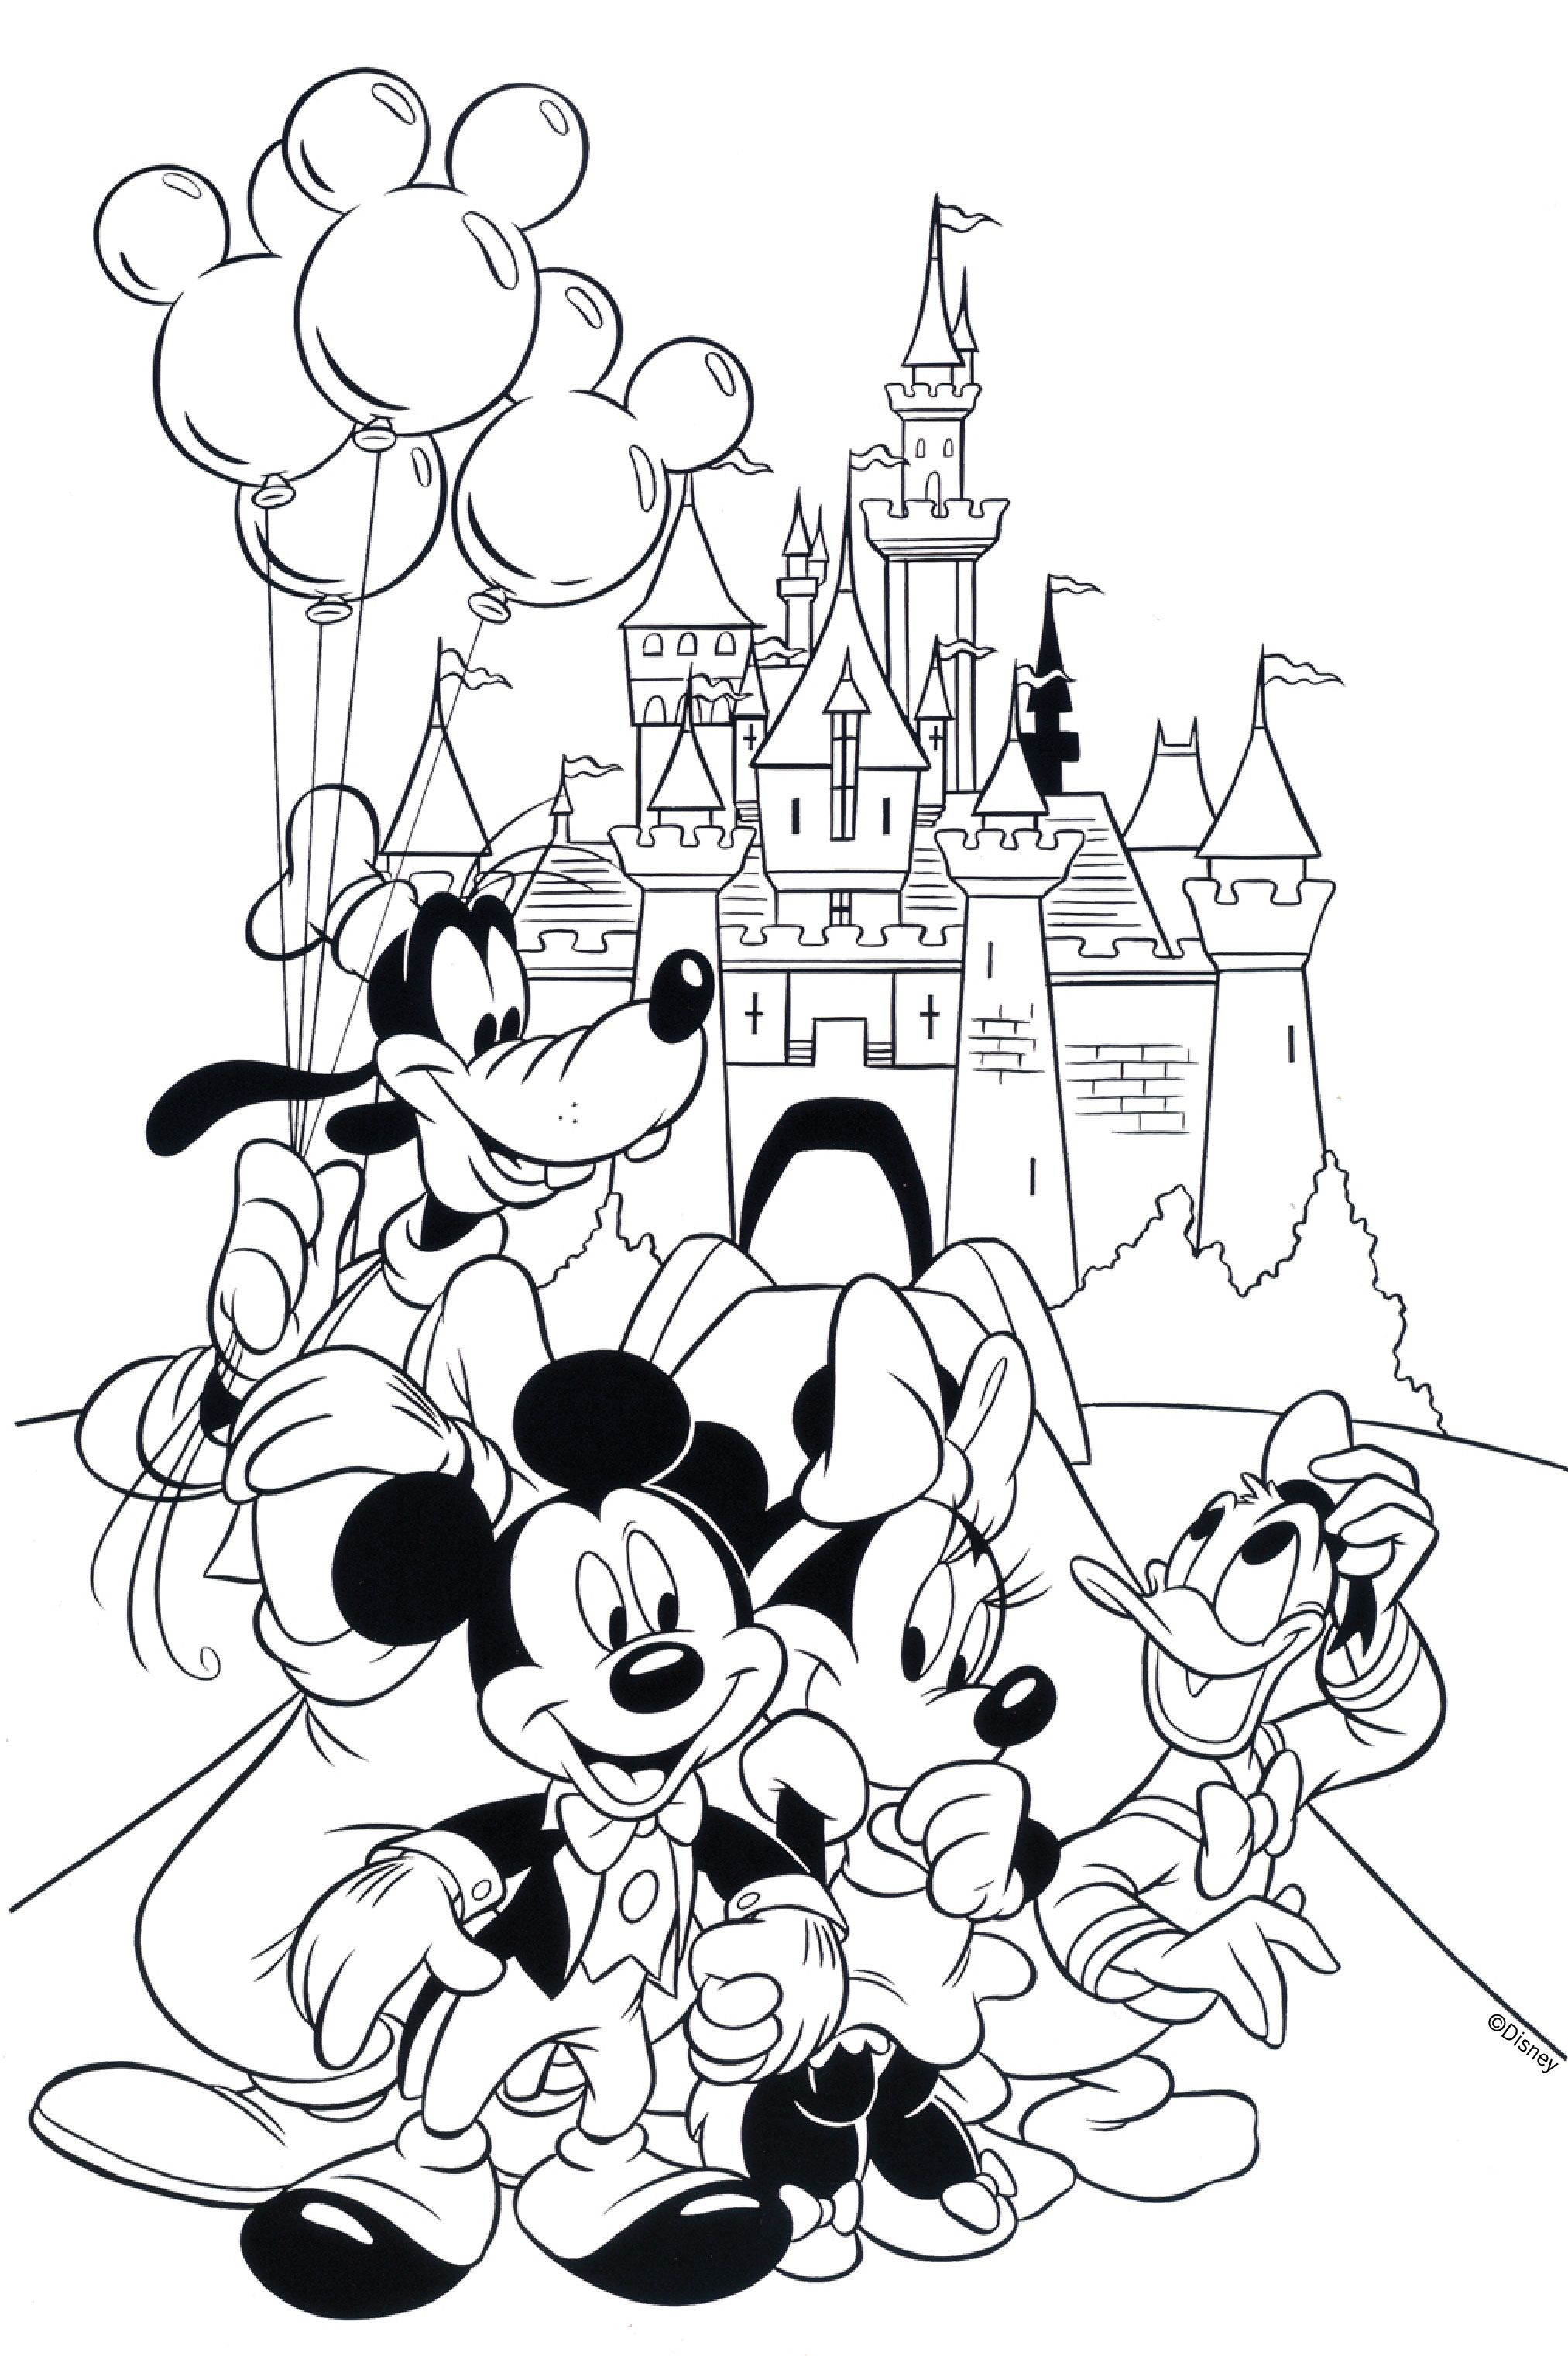 free printable coloring pages disney Free Disney Coloring Pages | Coloring Books | Disney coloring  free printable coloring pages disney